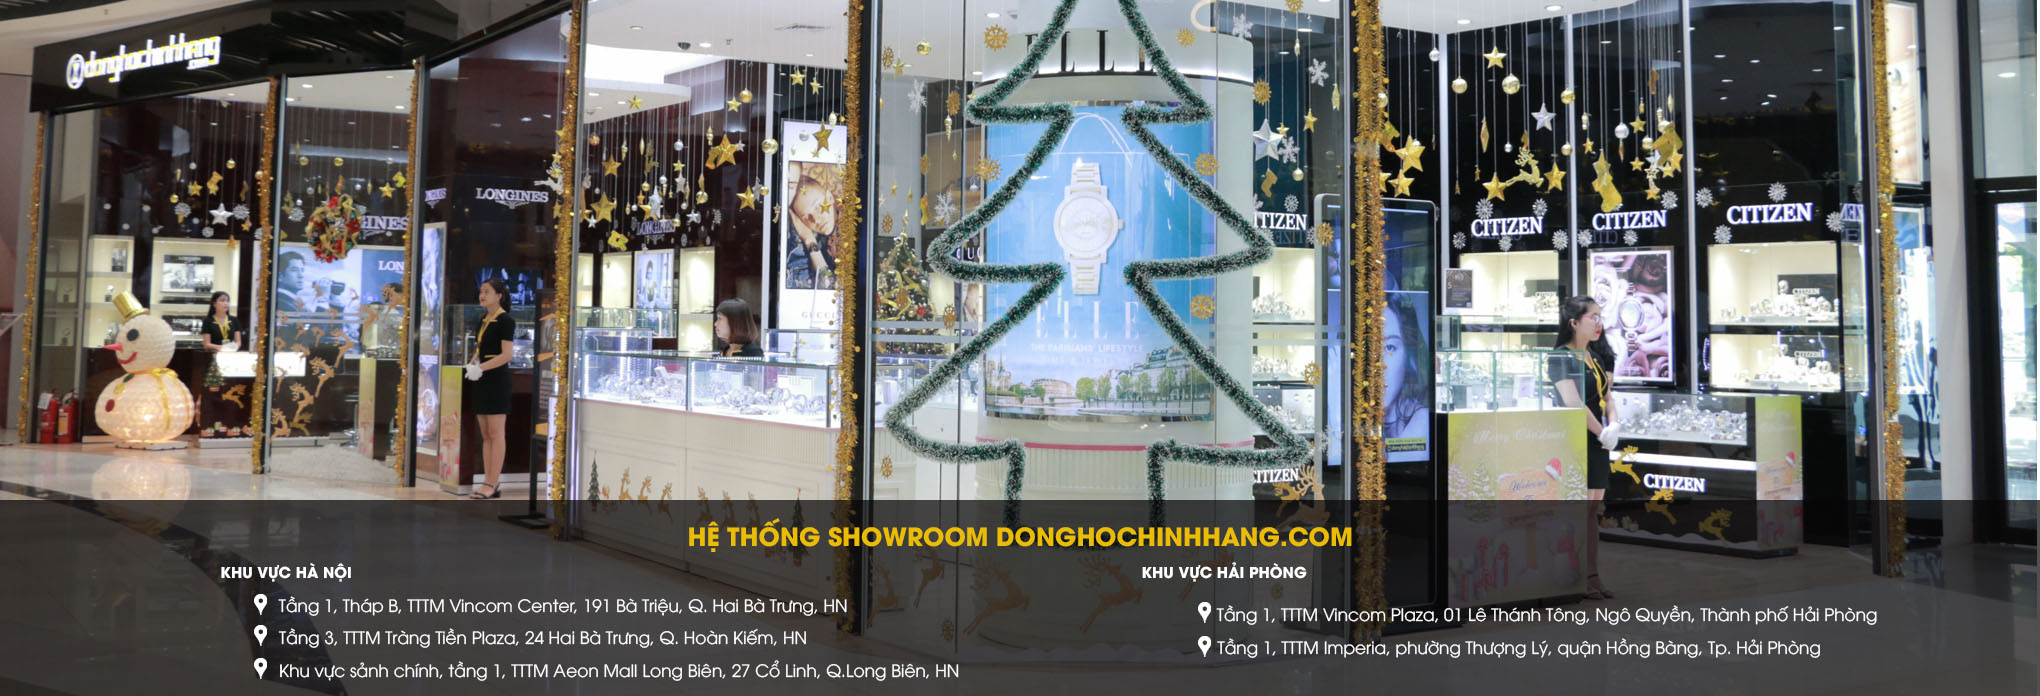 he thong showroom donghochinhhang